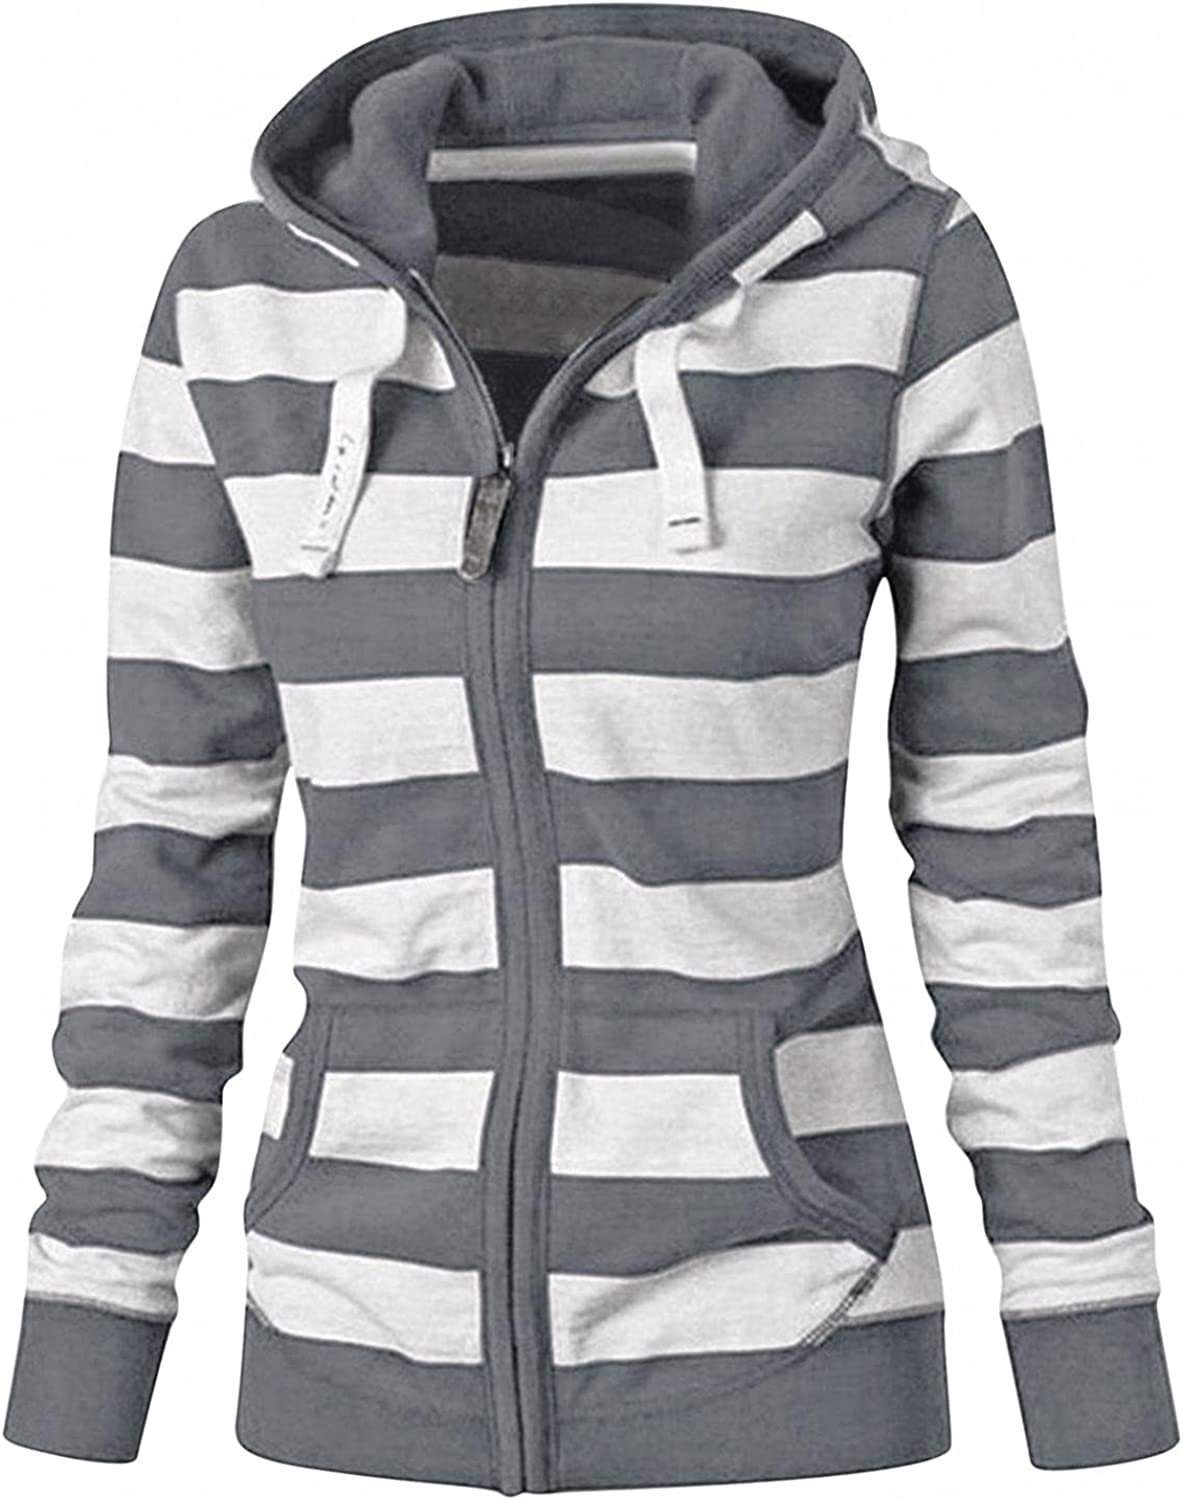 Sweatshirts for Women Hoodie Pullover Stripe Printed Long Sleeve Tops Pullover Sweater Cardigan with Pockets